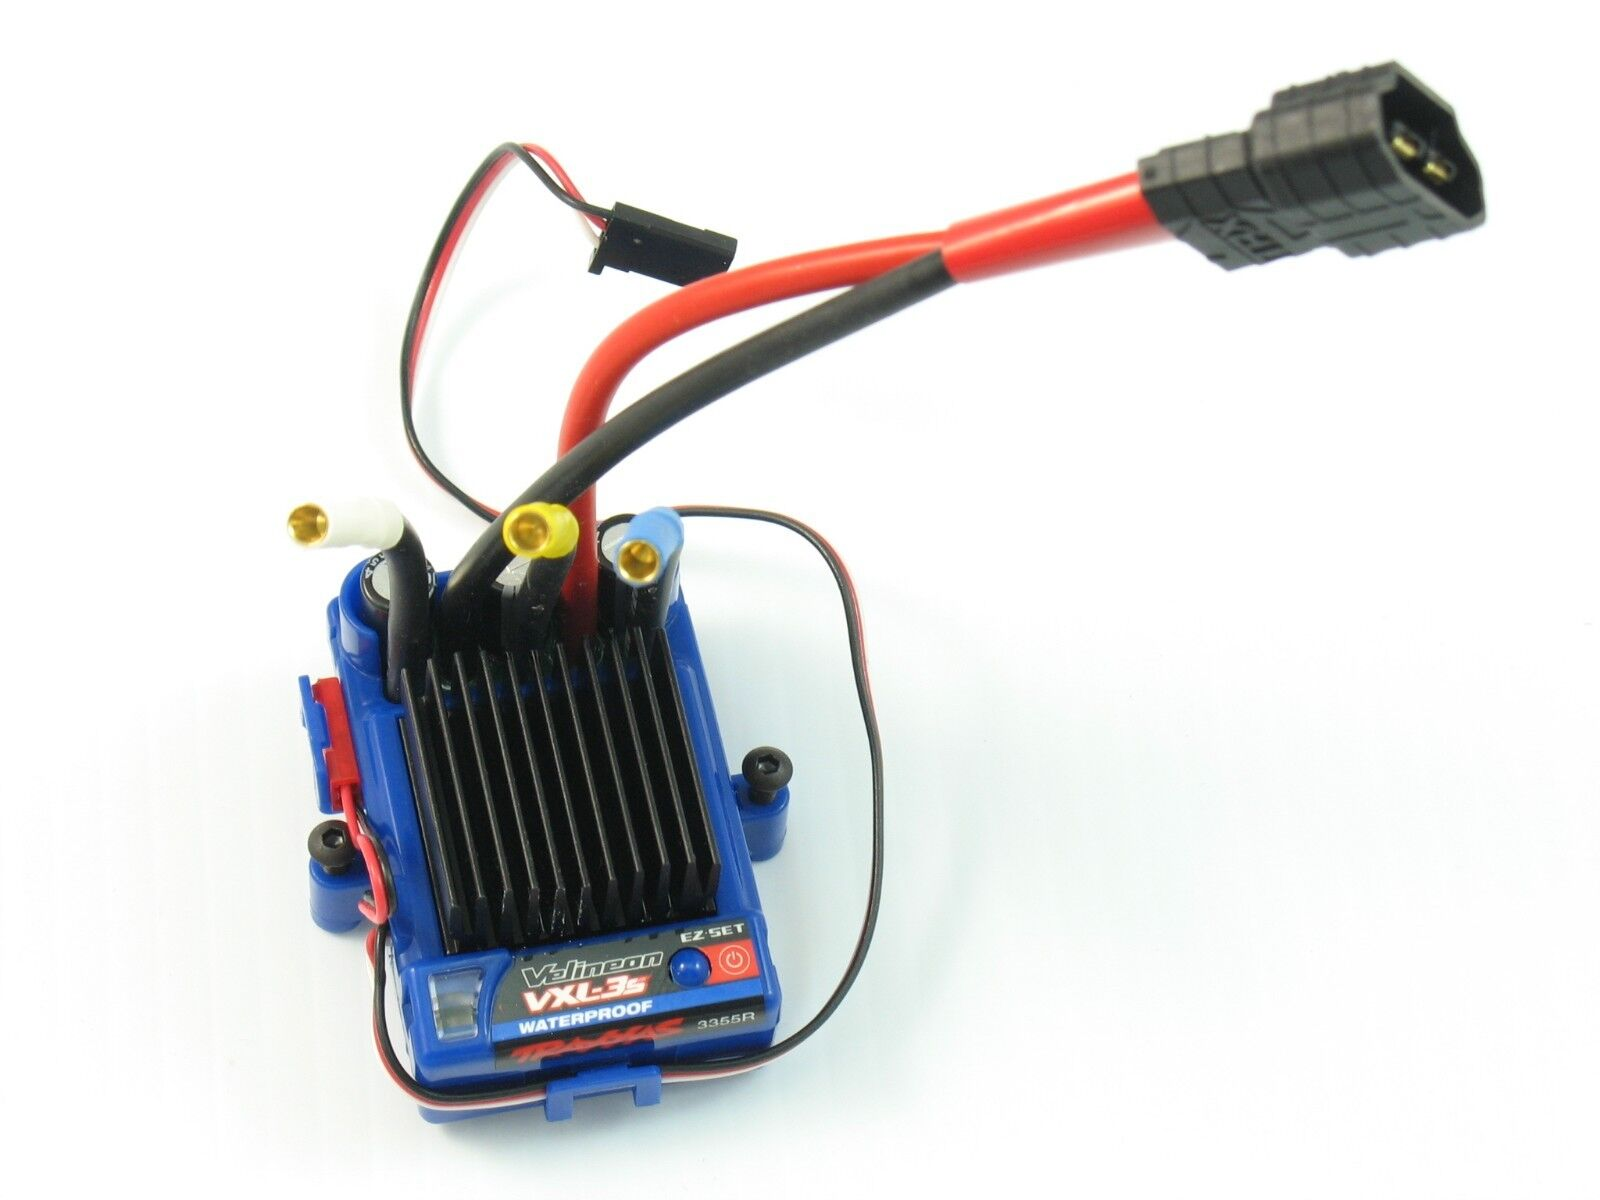 NEW TRAXXAS STAMPEDE 4X4 VELINEON BRUSHLESS ESC VXL-3S ID WATERPROOF 3355R 1/10